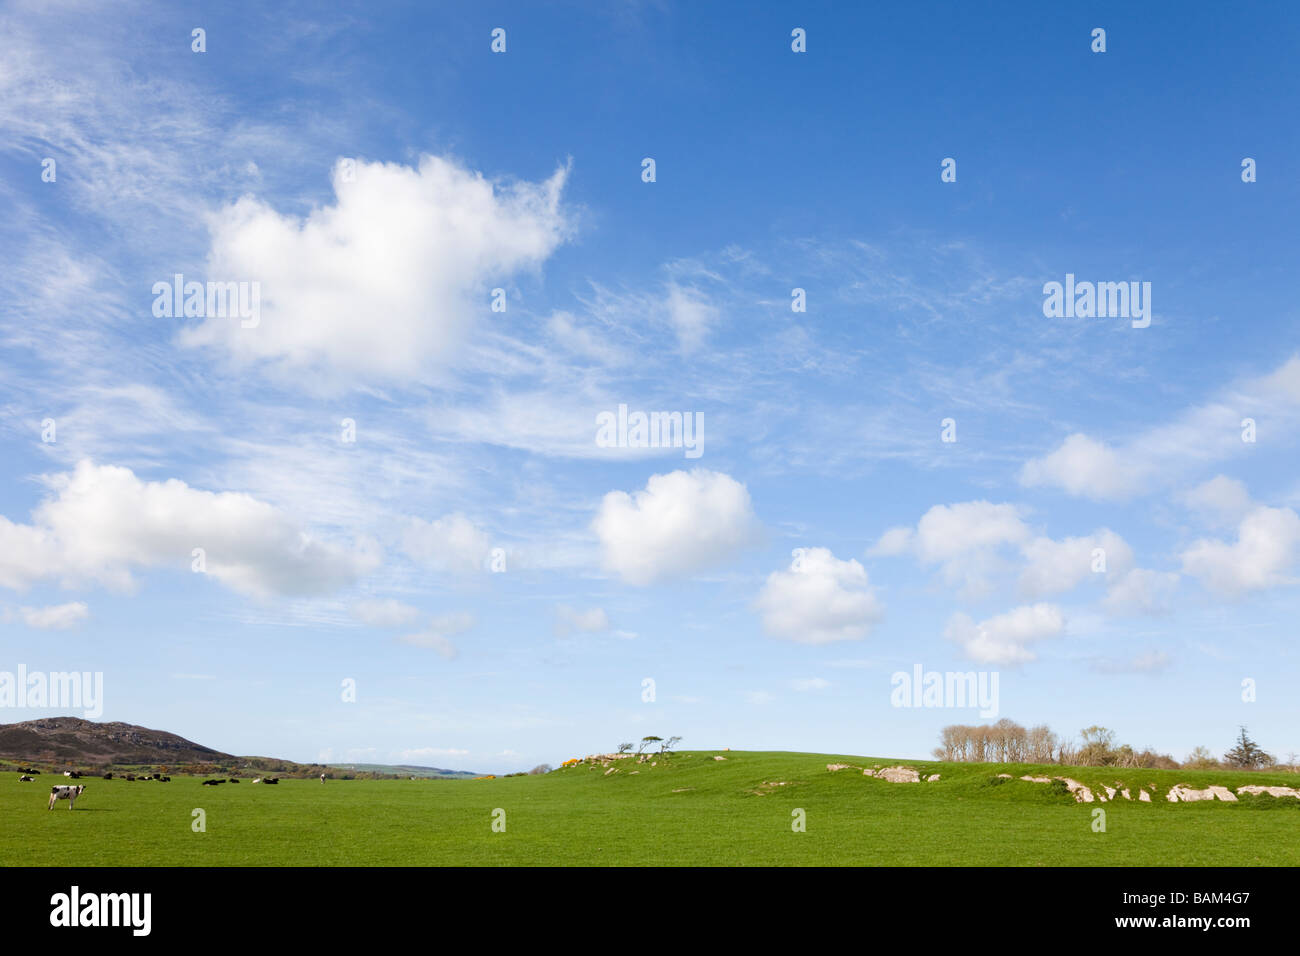 UK Country side scene with big blue sky and white fluffy summer clouds - Stock Image